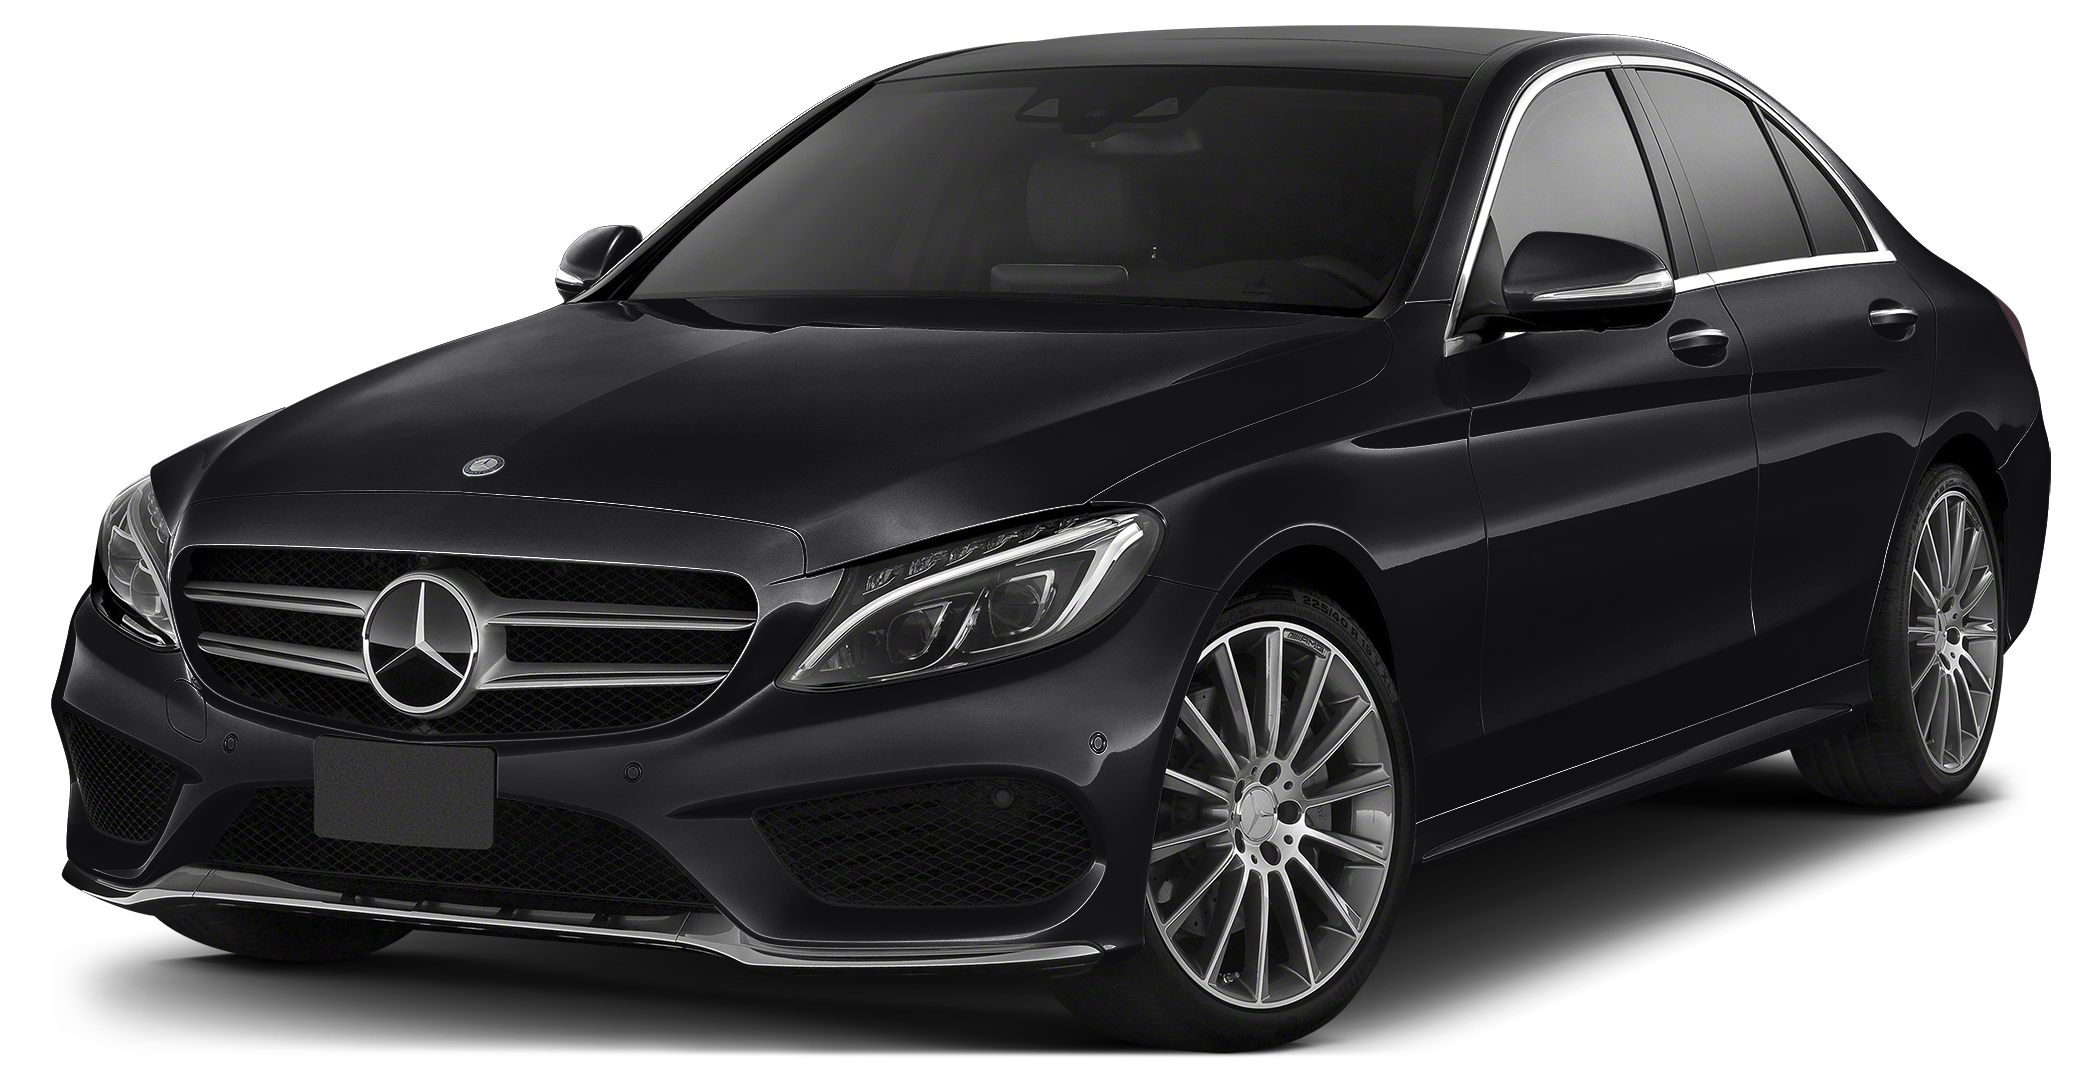 2015 MERCEDES C-Class C300 4MATIC This is a 2015 C300W4 sedan just in from a Mercedes-Benz employe